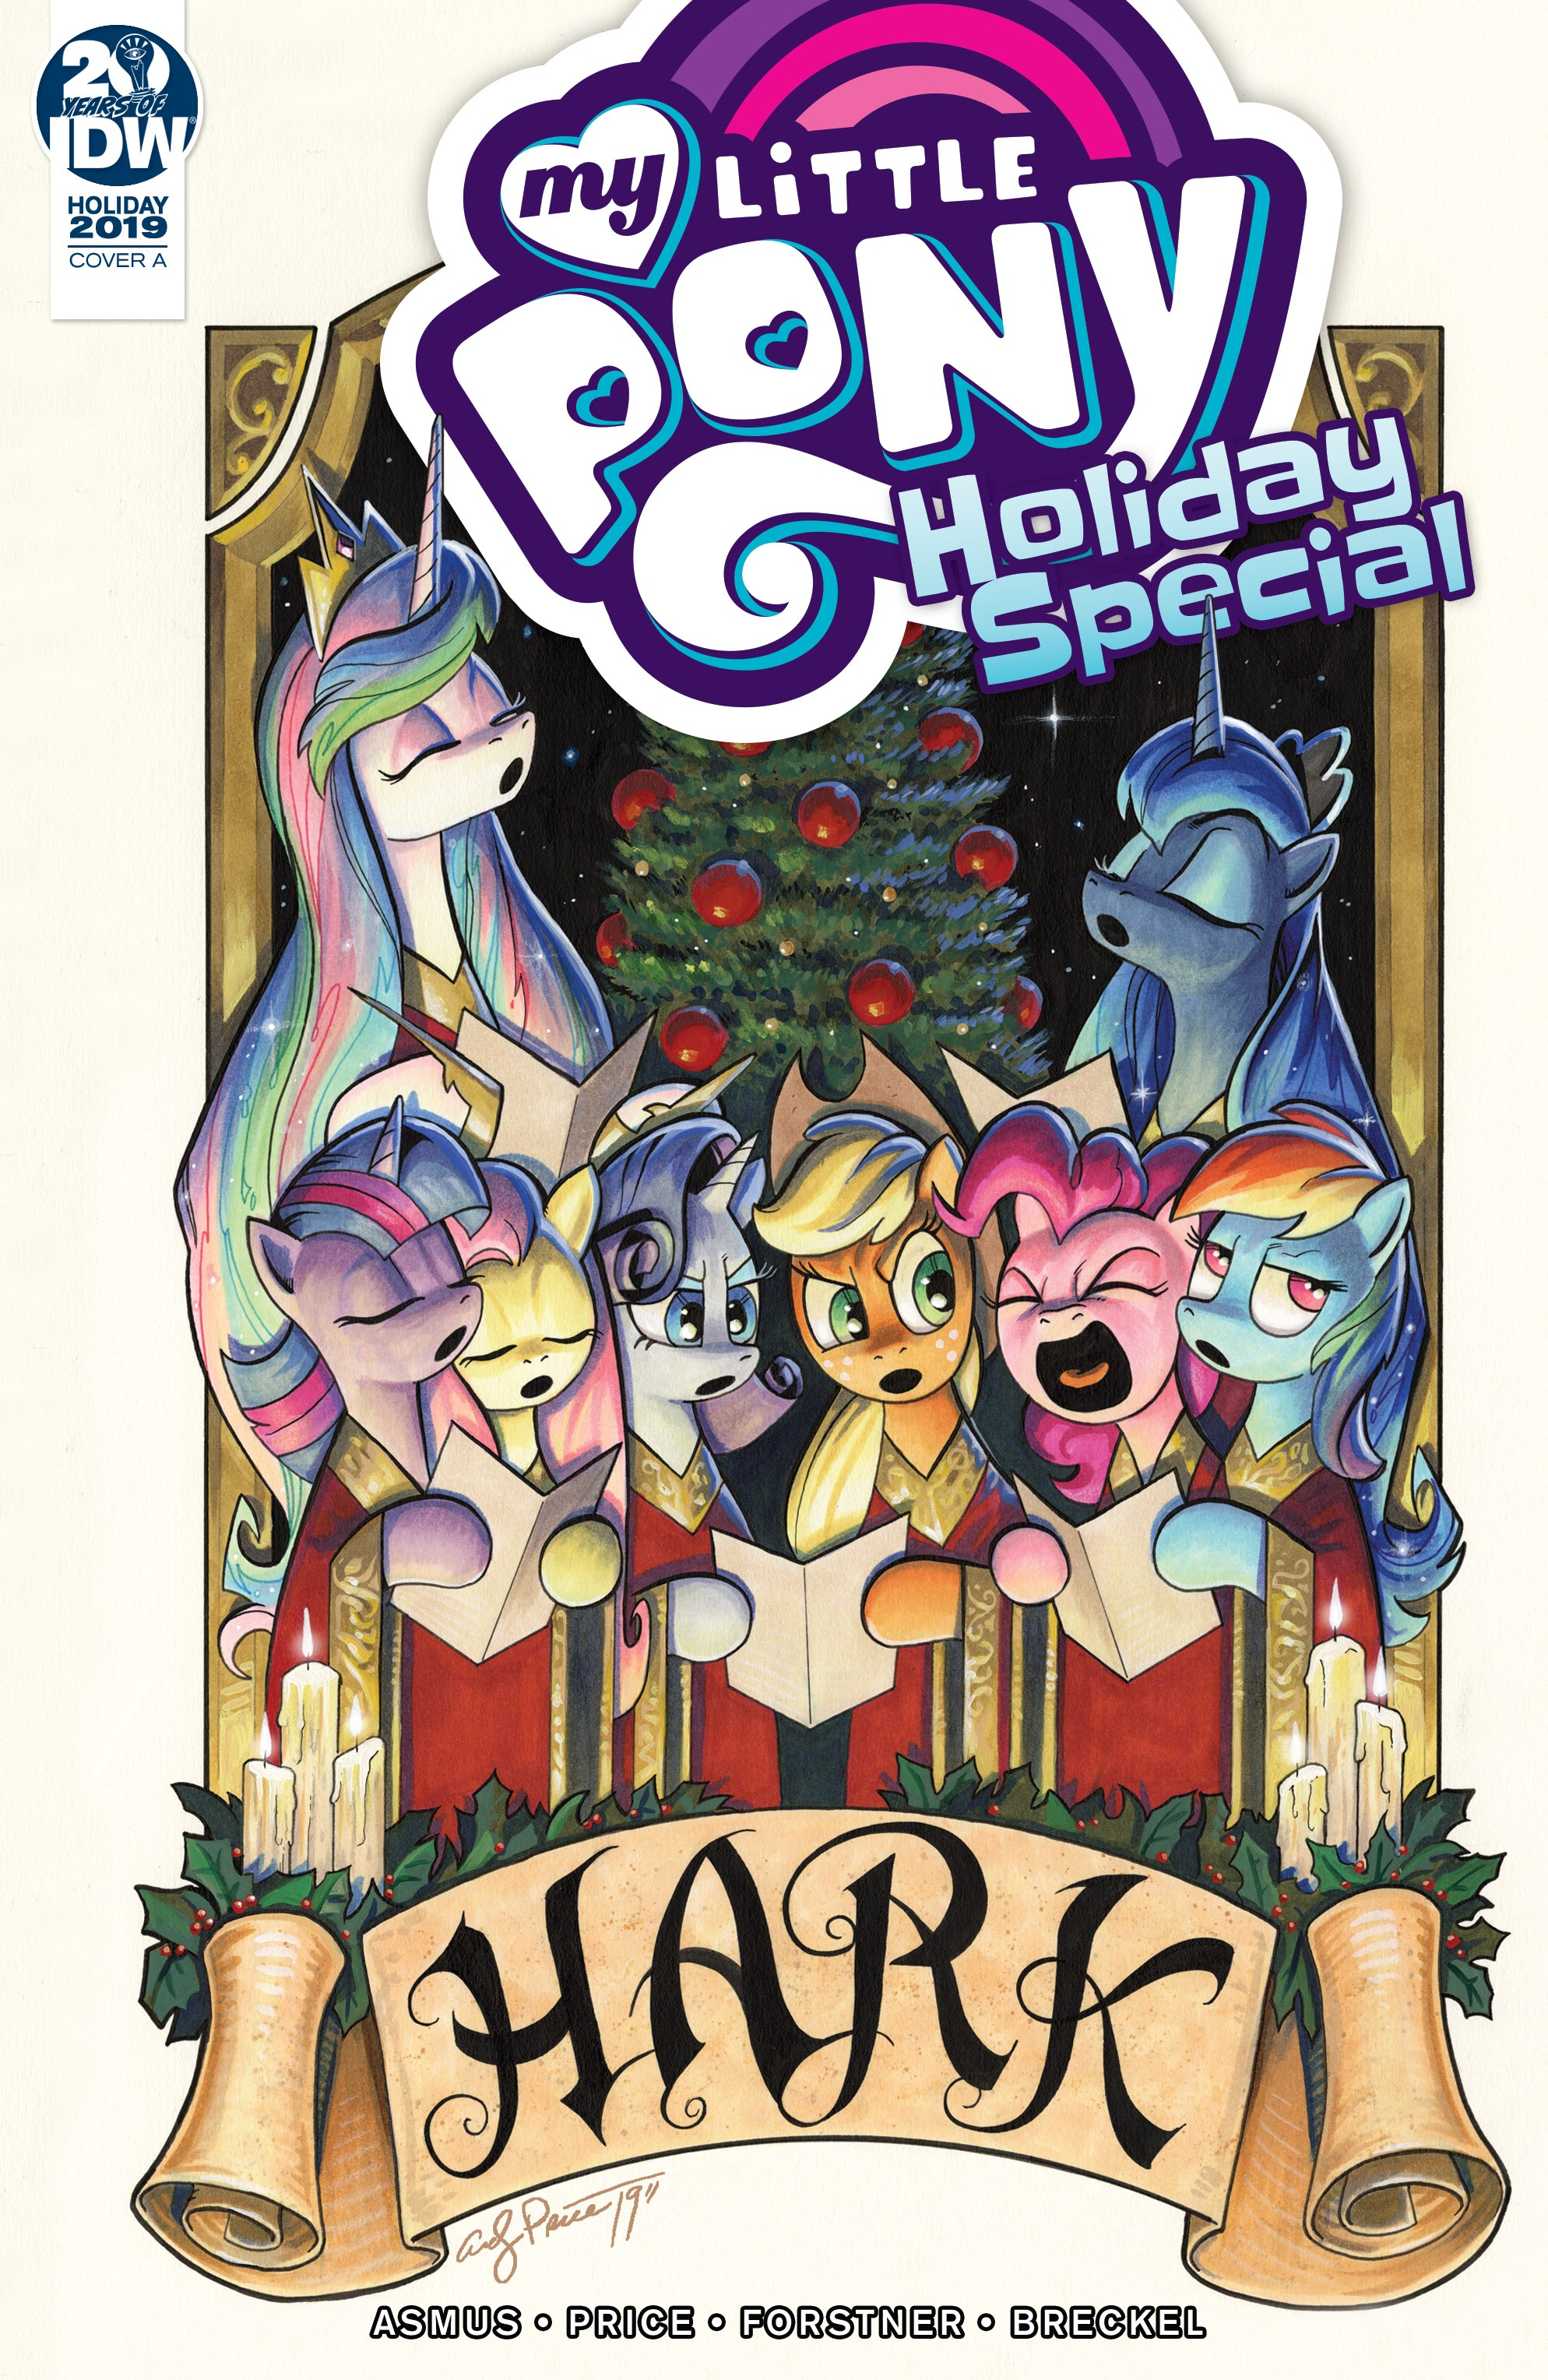 My Little Pony Holiday Special (2019) Full Page 1